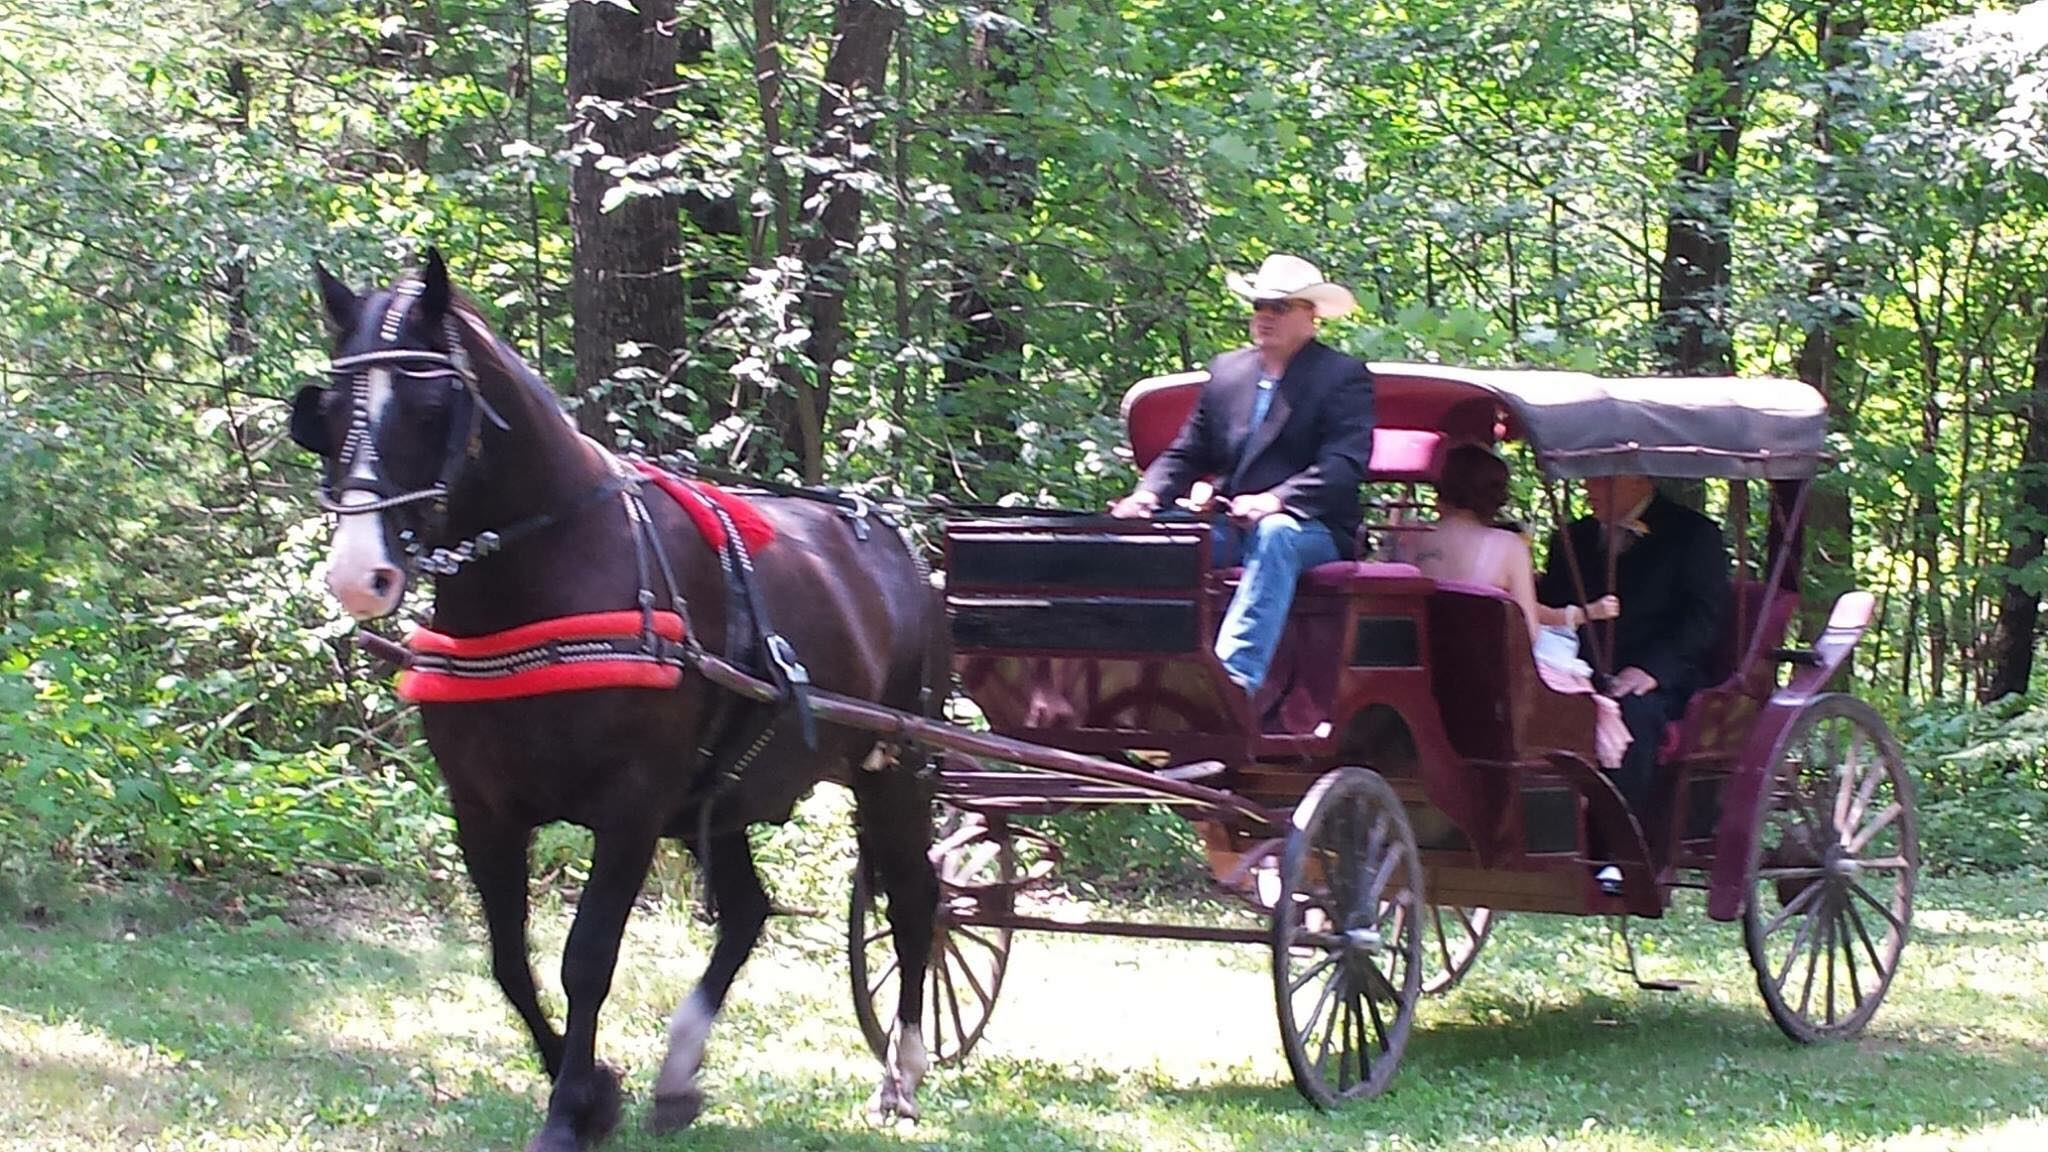 Cabin Ridge Rides is just 20 minutes from the Inn, enjoy a carriage ride in the summer or fall.